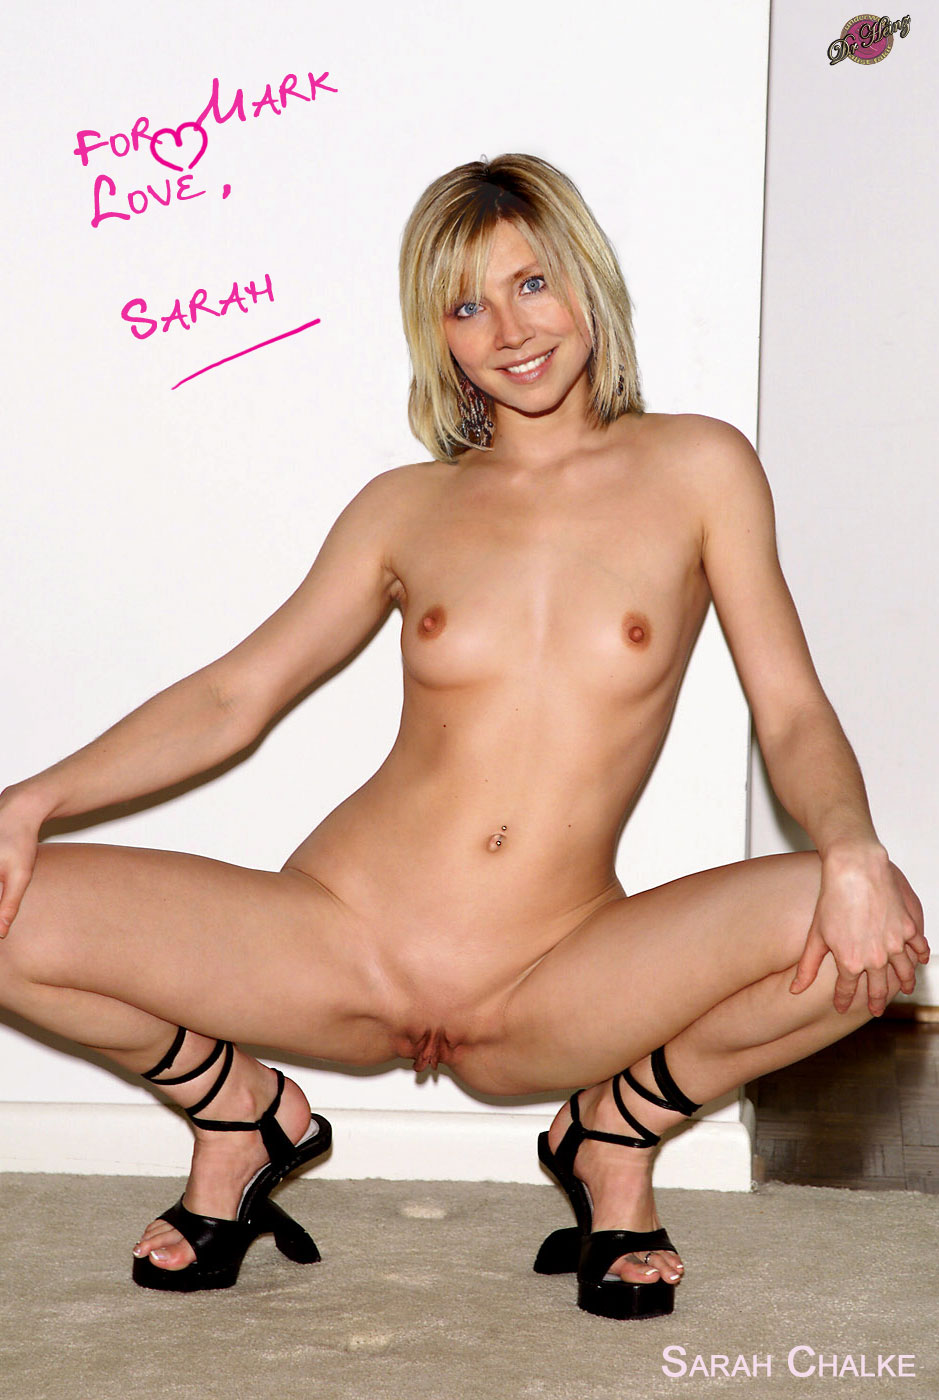 Sarah chalke peeing fakes, hottest cj miles nude pic